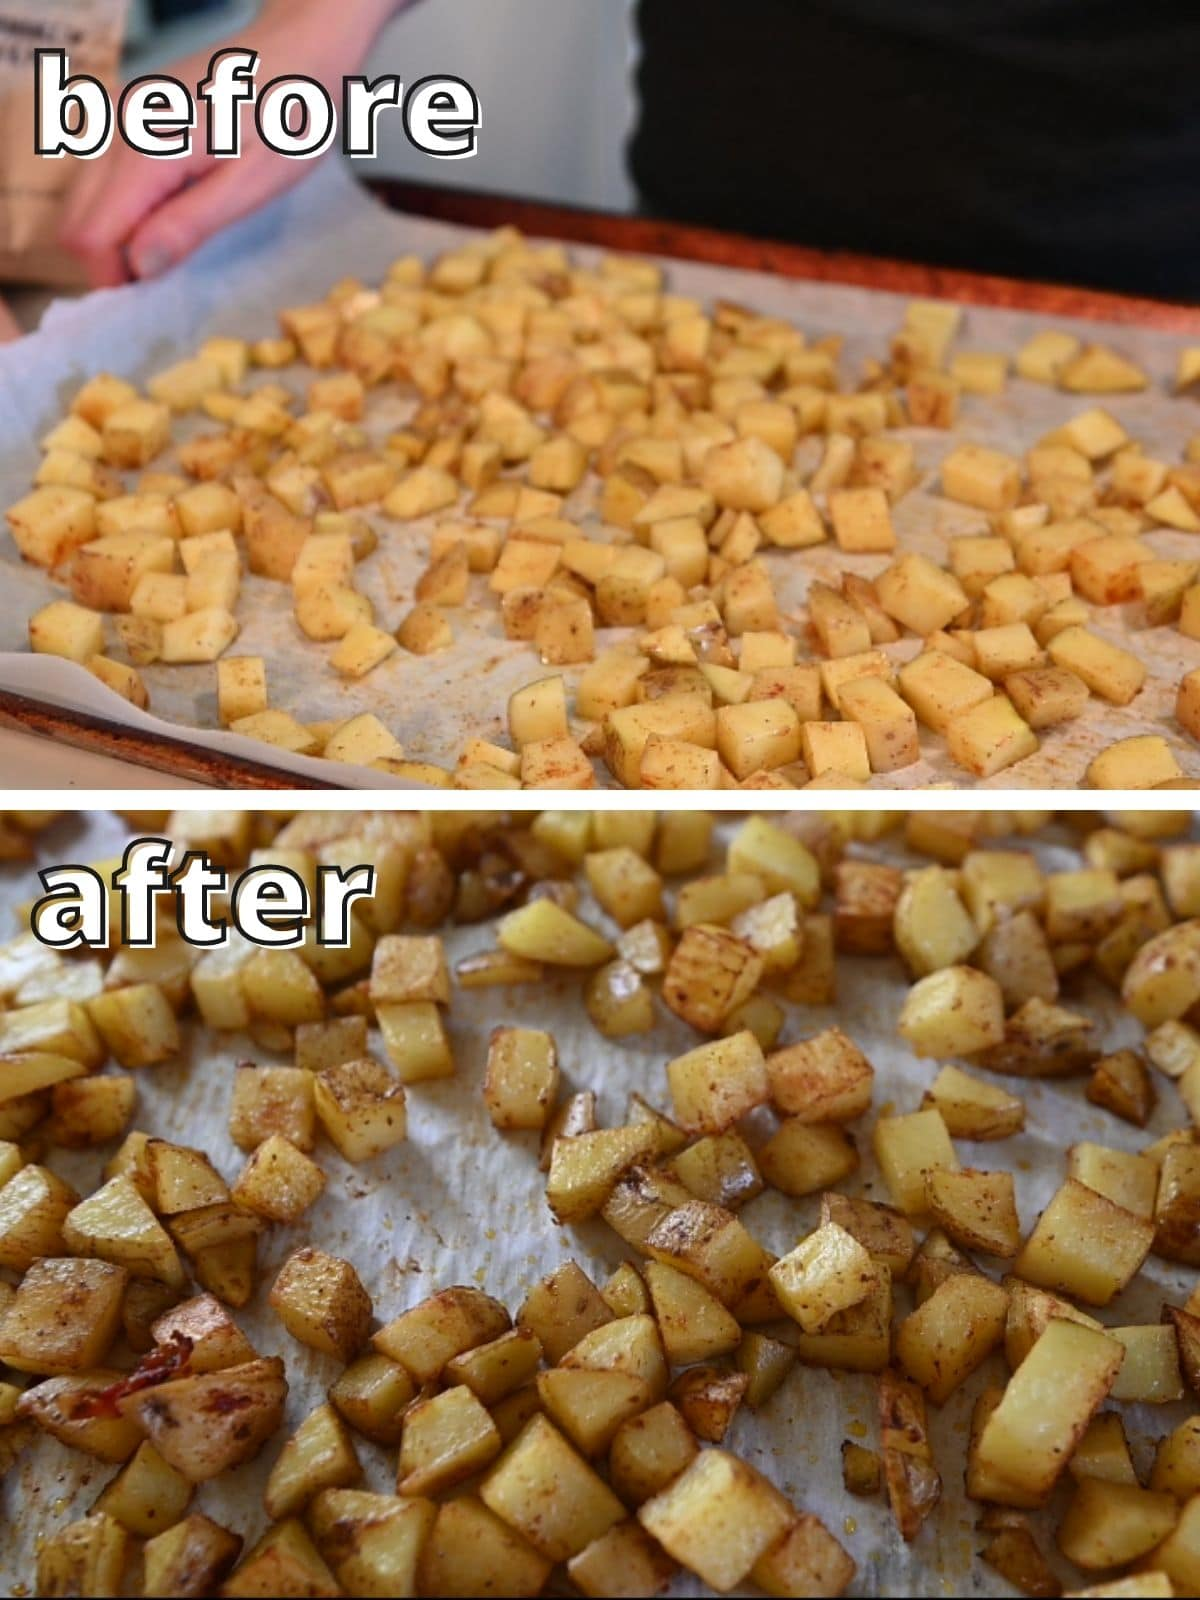 Before and after potatoes cooking on sheet pan